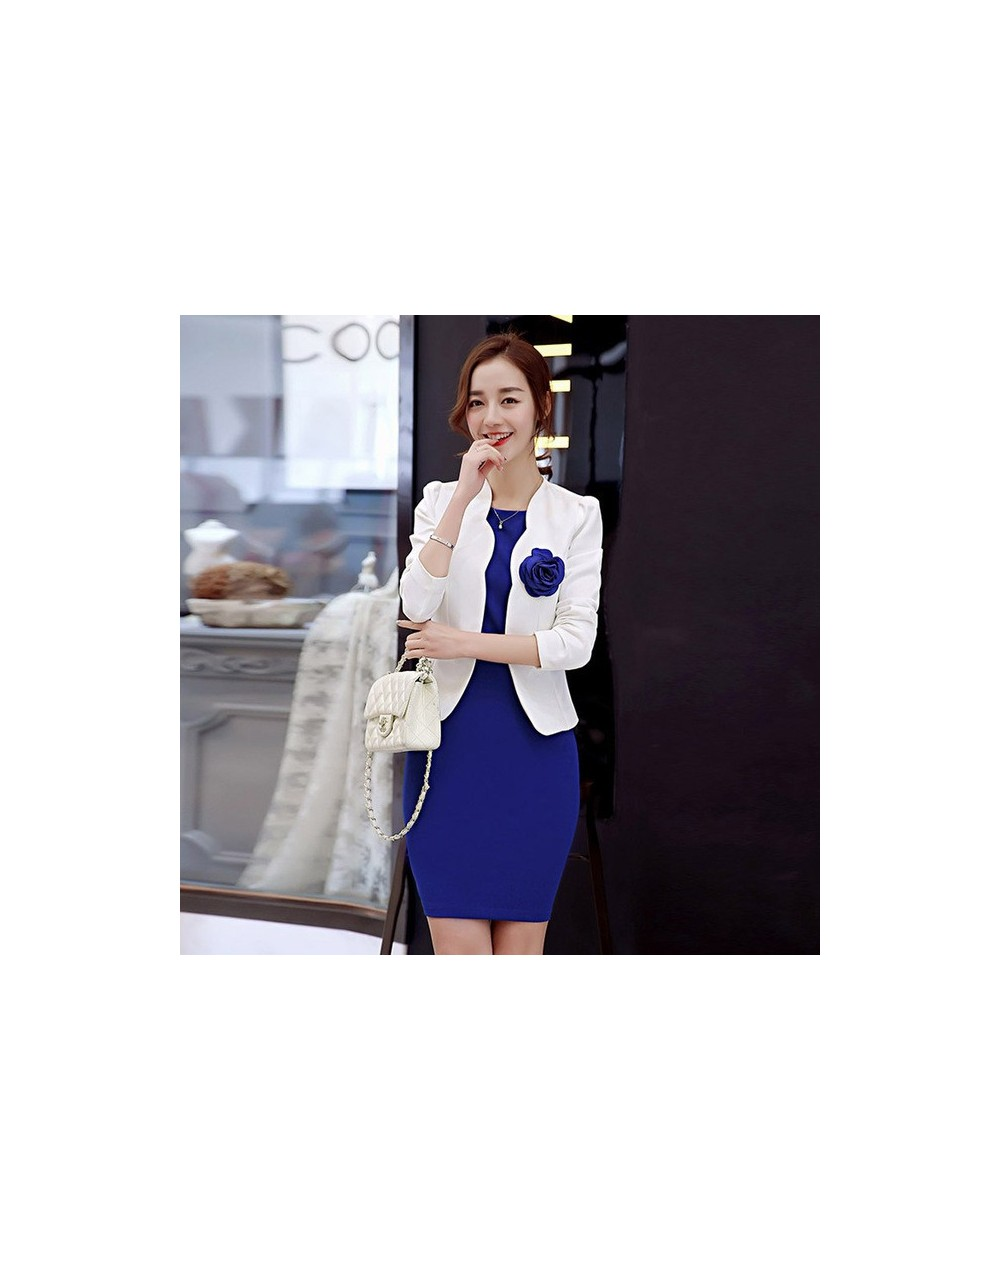 New 2019 close-fitting hip dress slim fit office blazers for women professional work outfits ladies dress and jacket suits L...